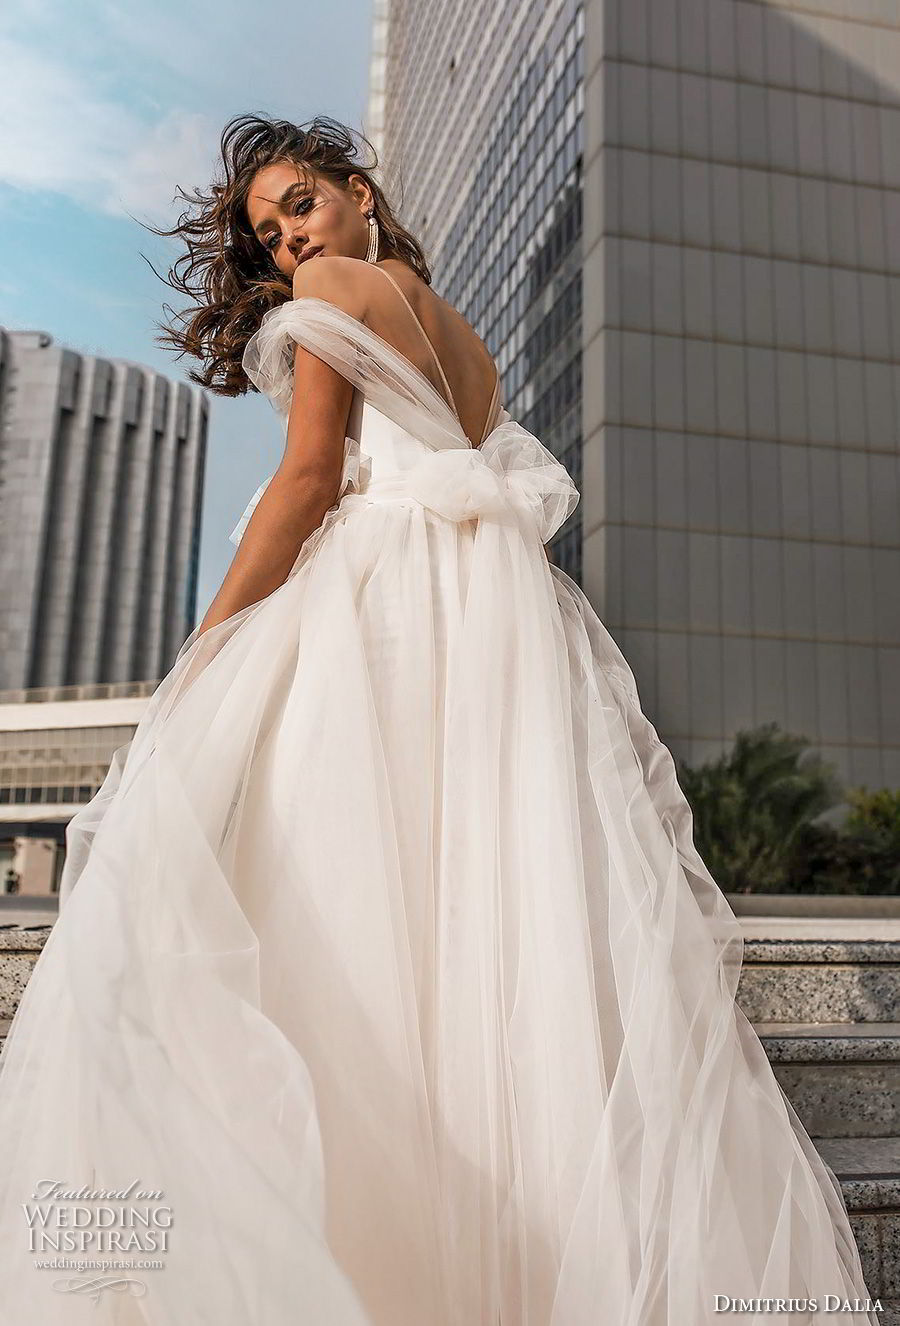 dimitrius dalia 2018 royal off the shoulder sweetheart neckline simple tulle skirt romantic soft a line wedding dress open v back (12) zbv